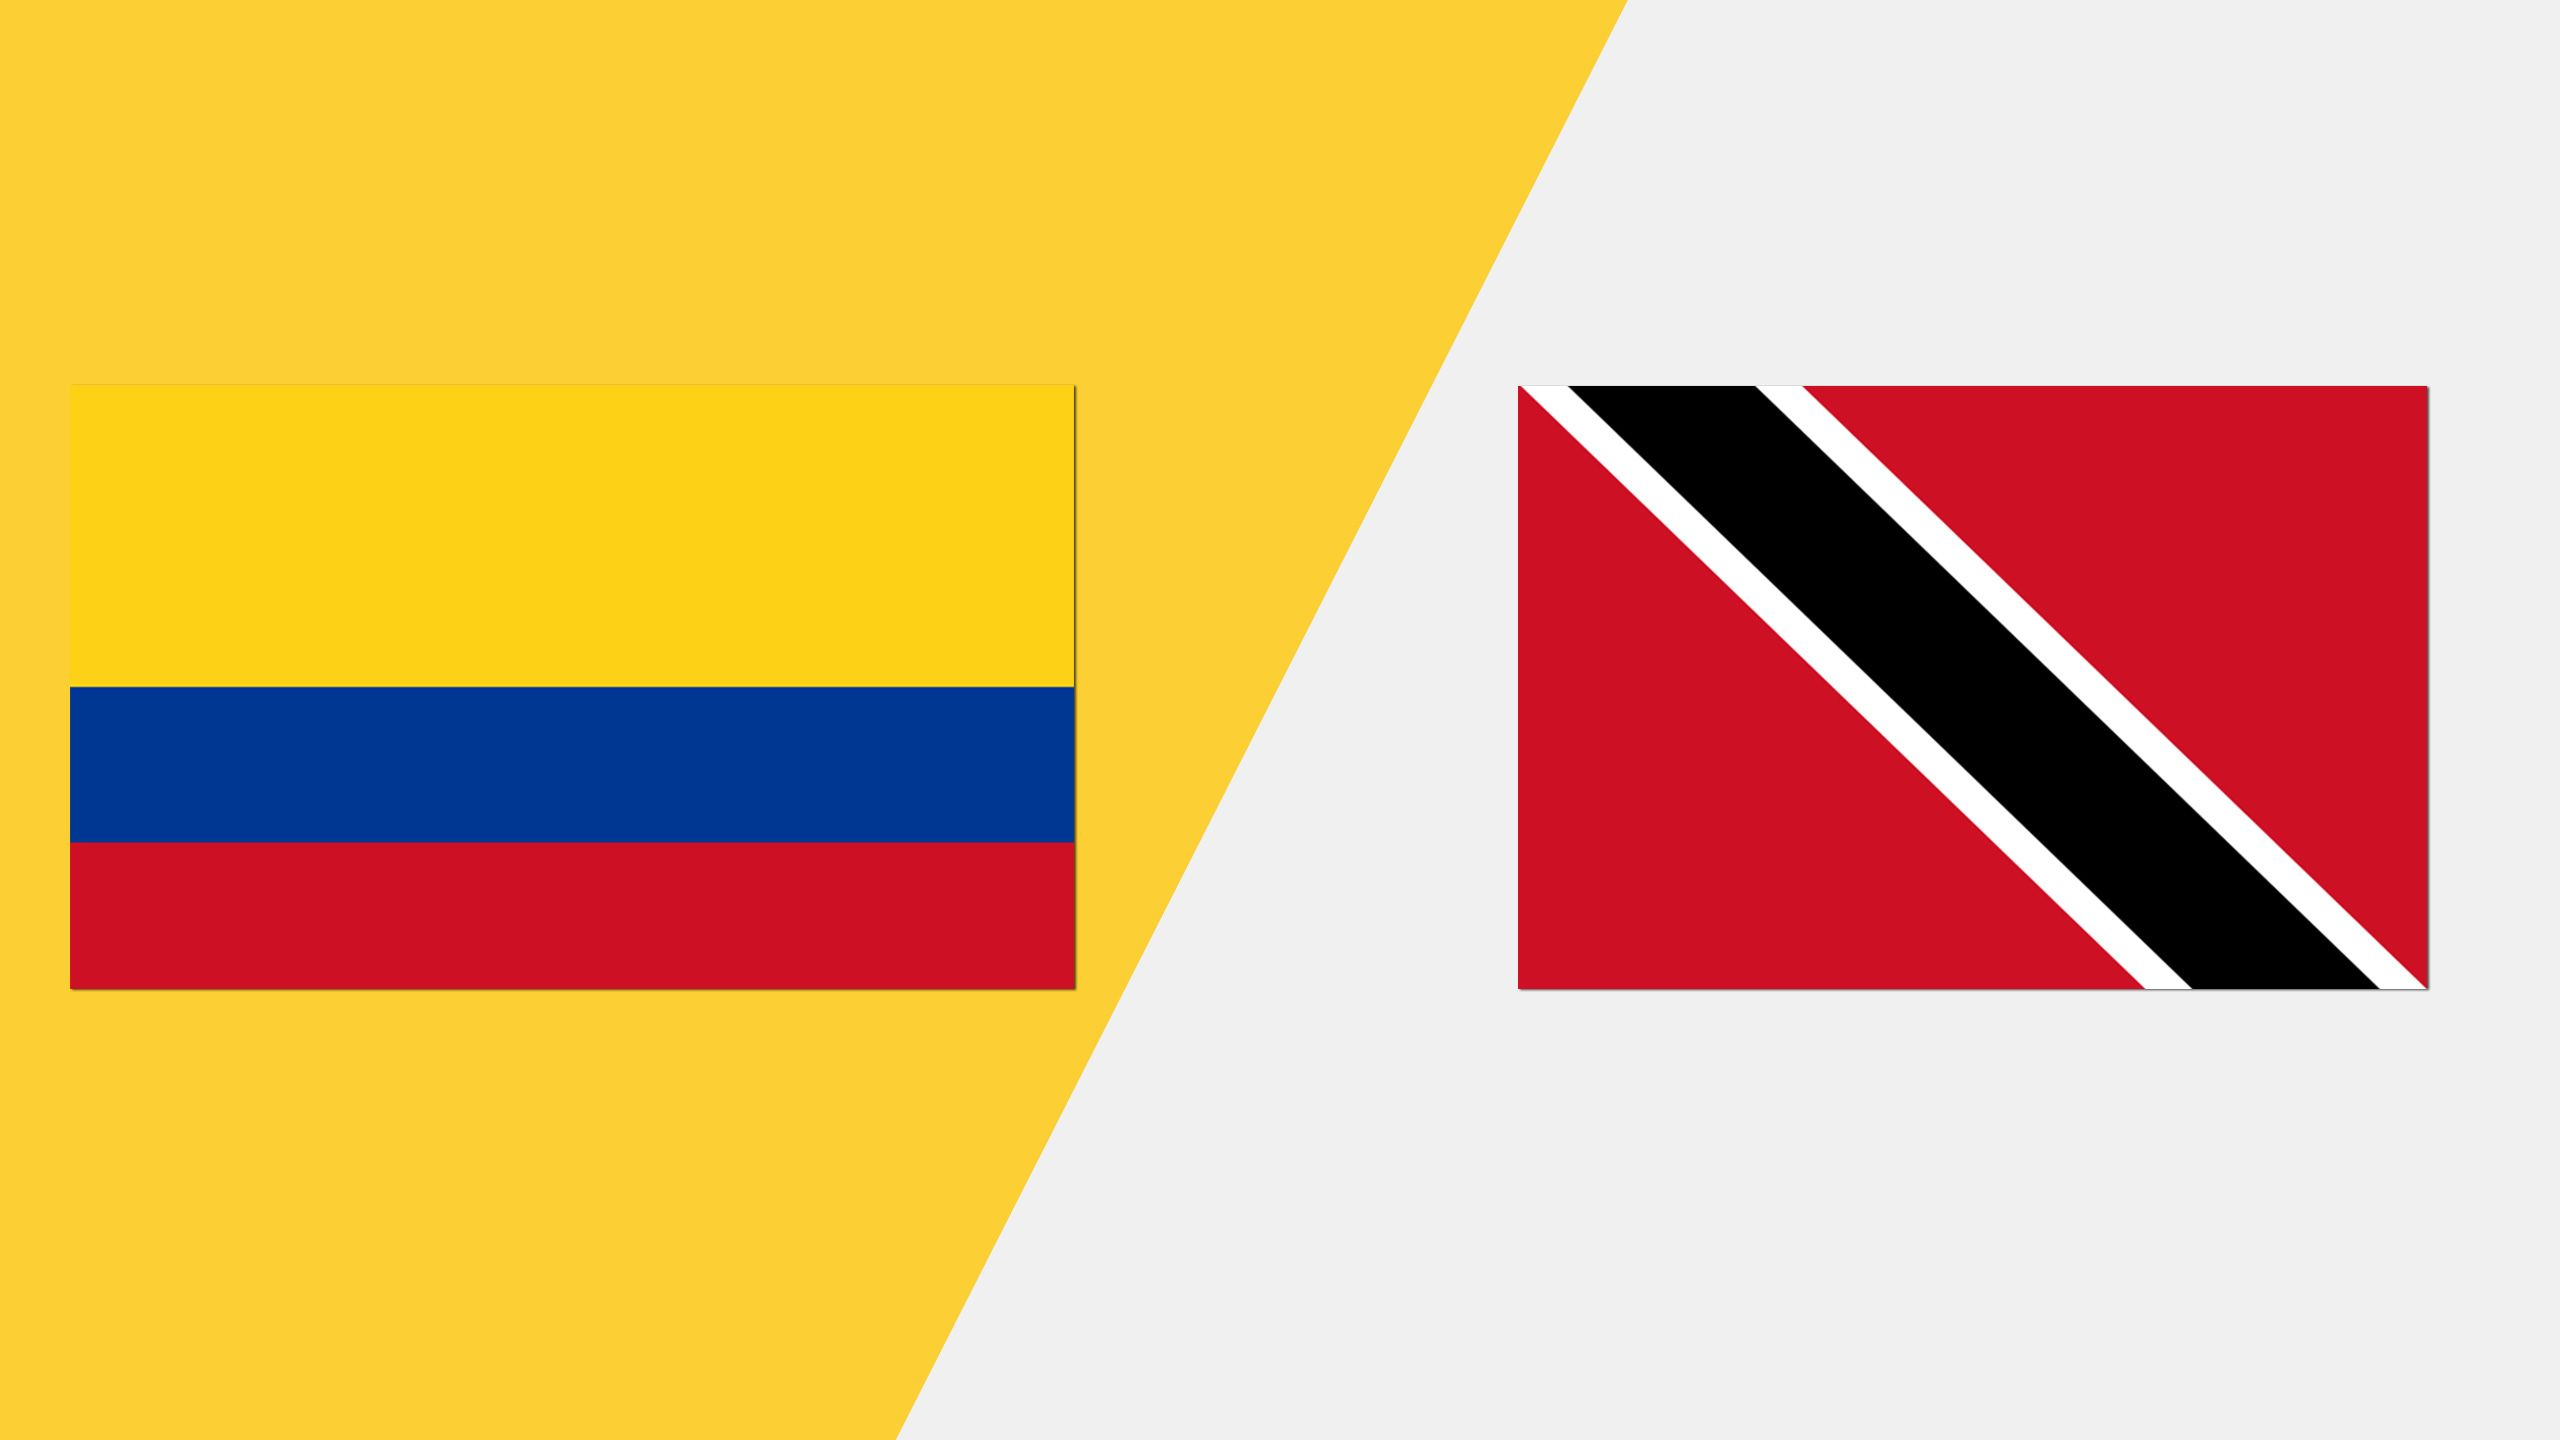 In Spanish - Colombia vs. Trinidad y Tobago (Grupo A)